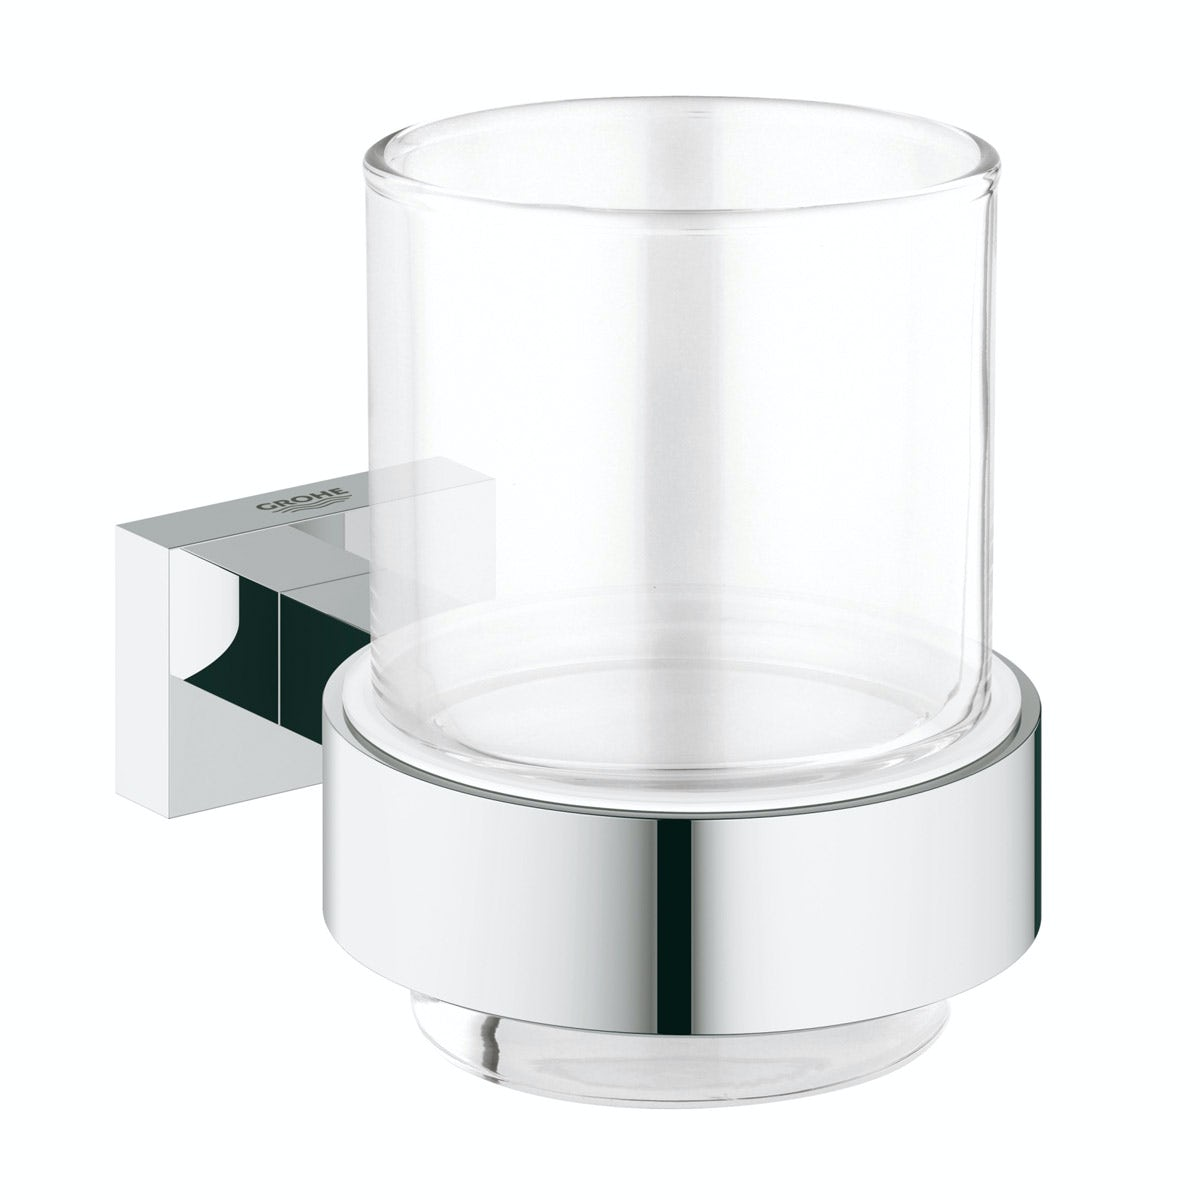 Grohe Essentials Cube tumbler and holder